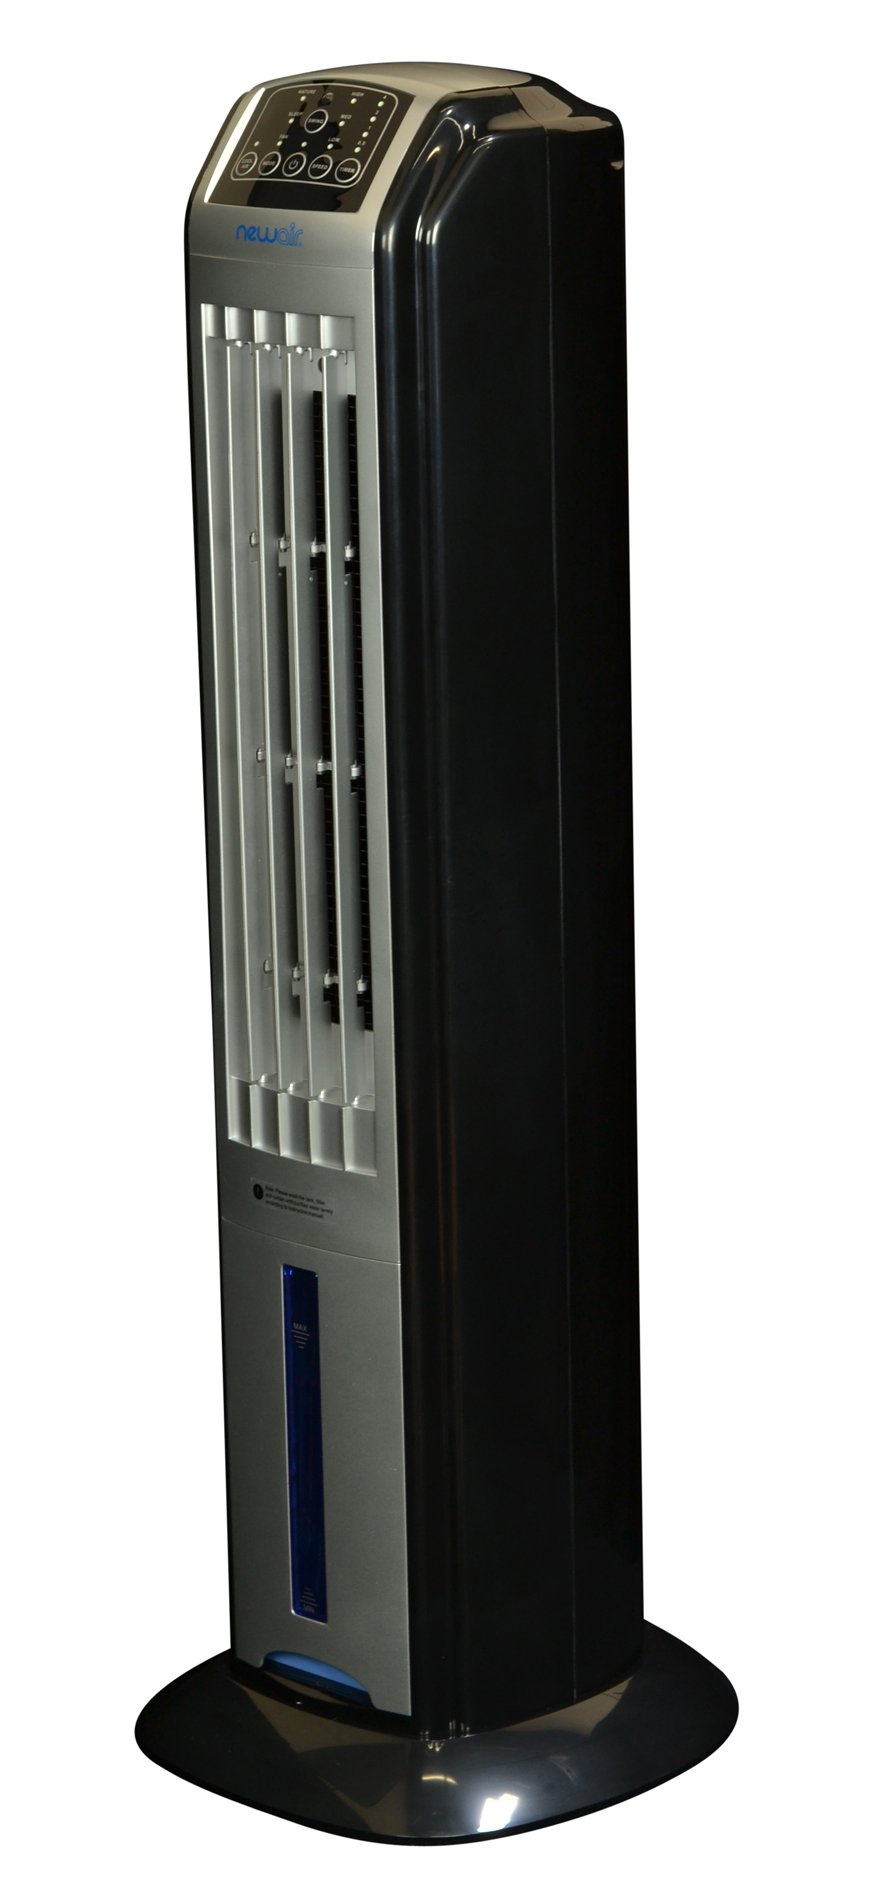 Cooling Tower Fan : Newair af electric tower fan with evaporative cooling